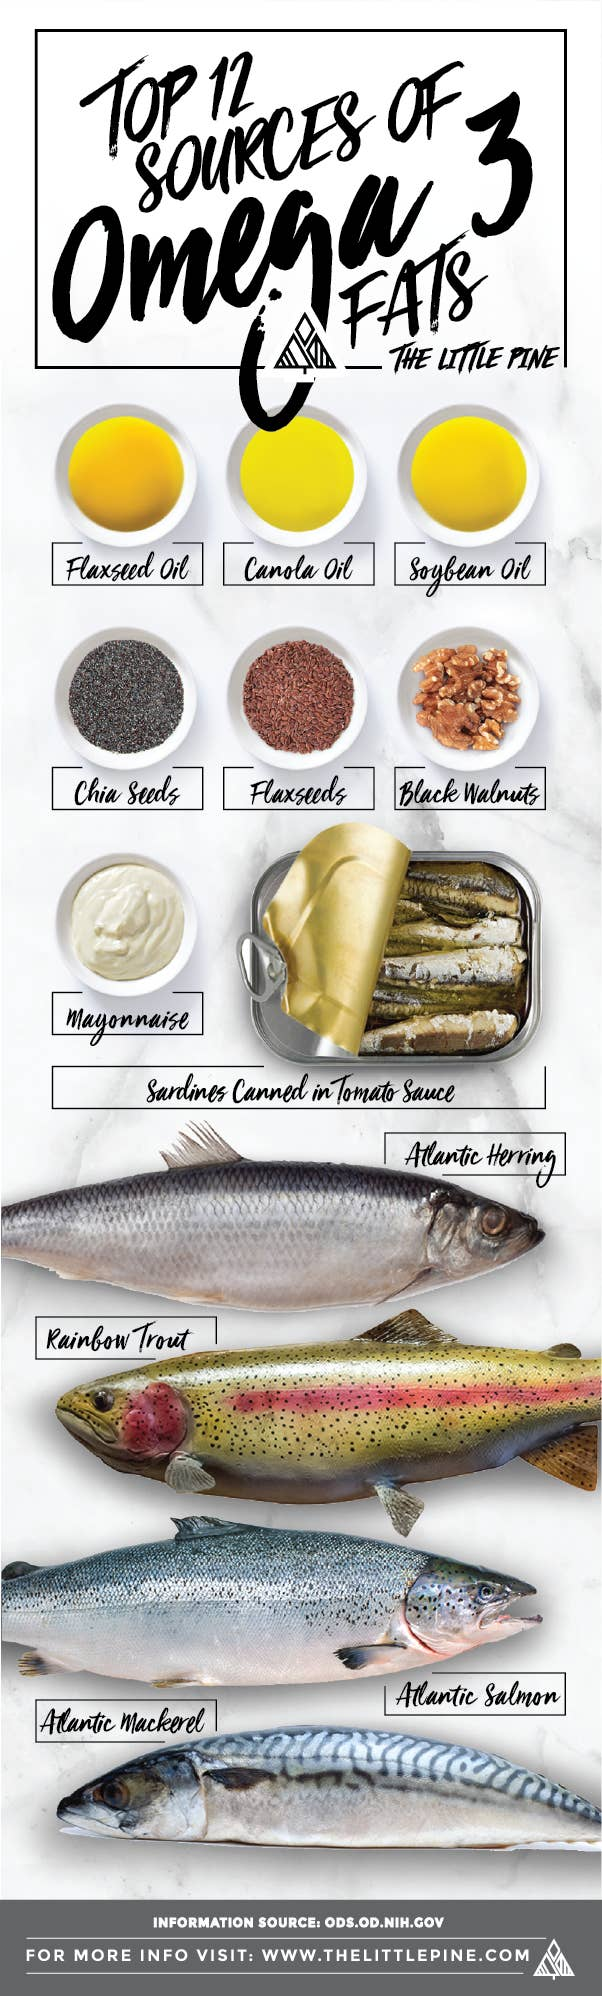 As BuzzFeed Health has reported, Americans tend to get more than enough saturated fat (the kind of fat in meat and dairy), but not nearly enough unsaturated fat from fish, nuts, seeds, and other plant-based sources. Unsaturated fats are really good for your heart, so eating more of them when you can is a great call.